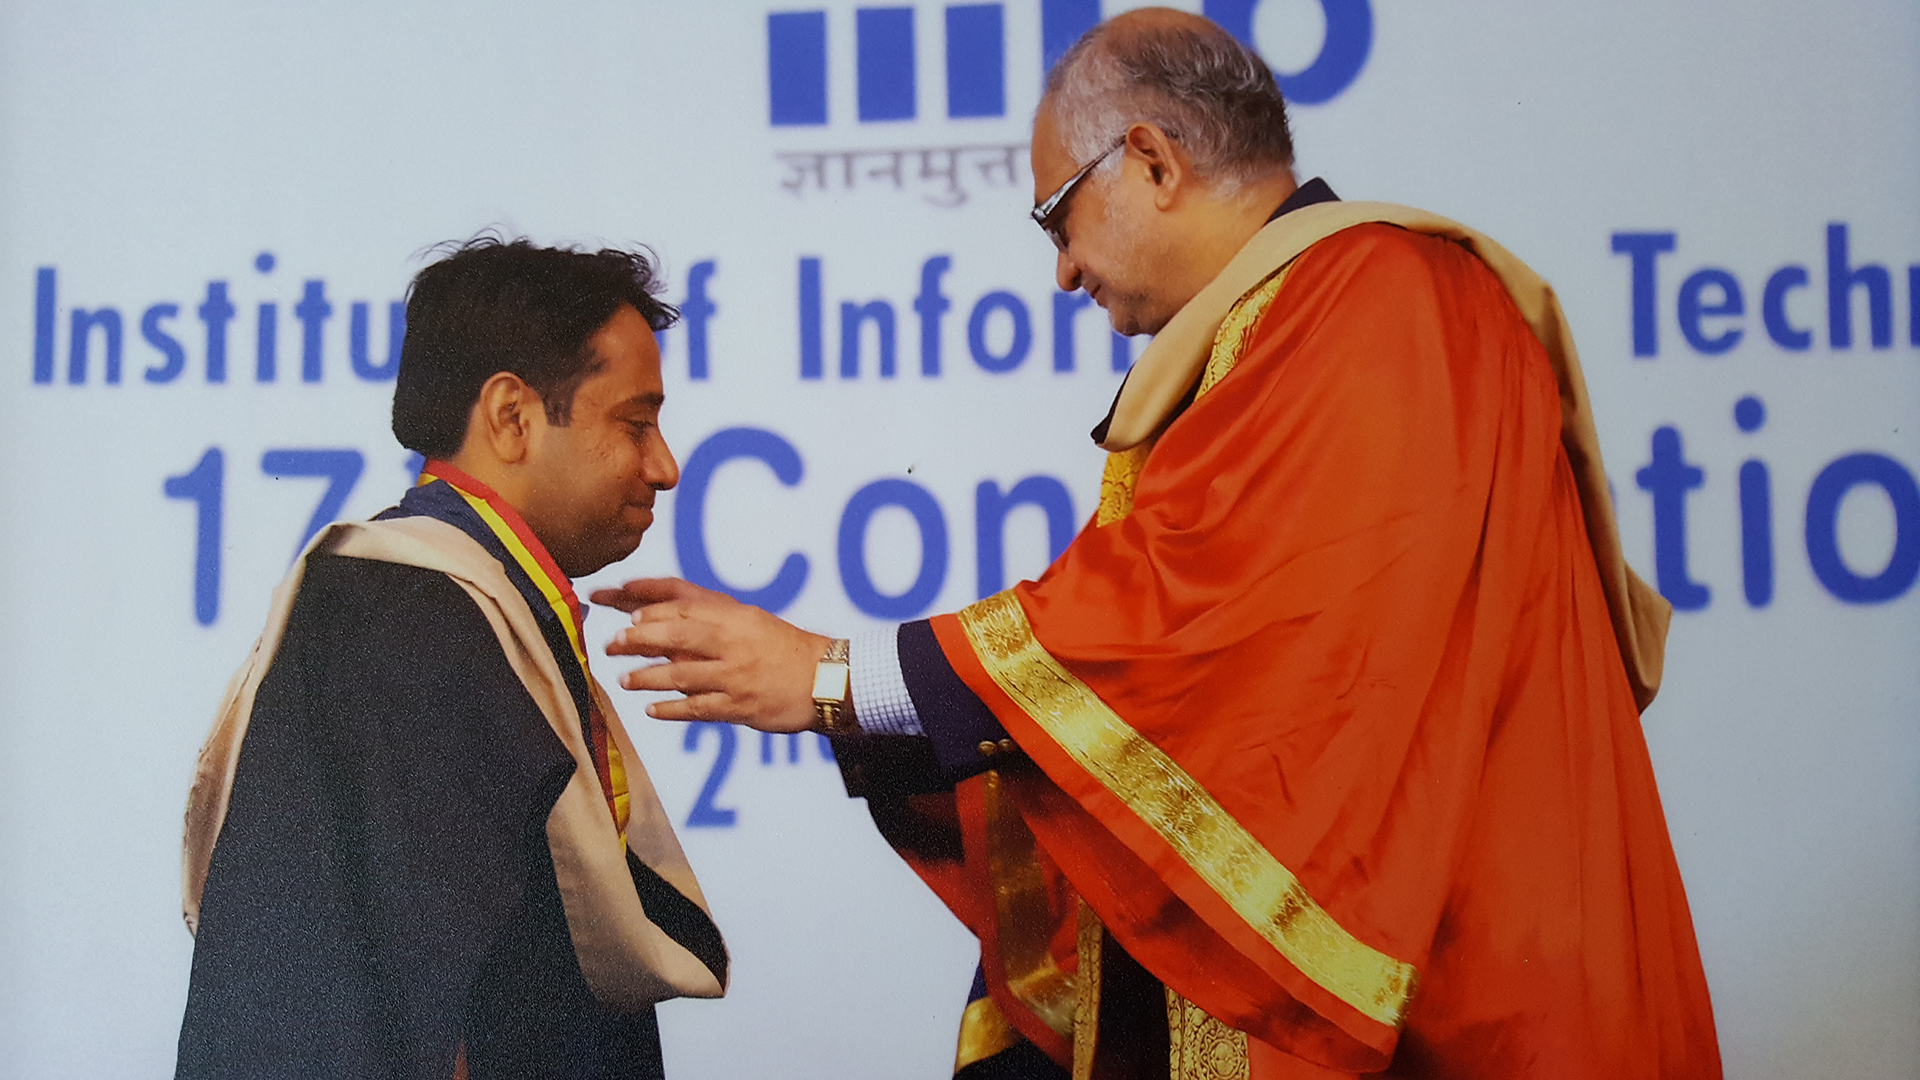 An award medal is being given to an awardee.